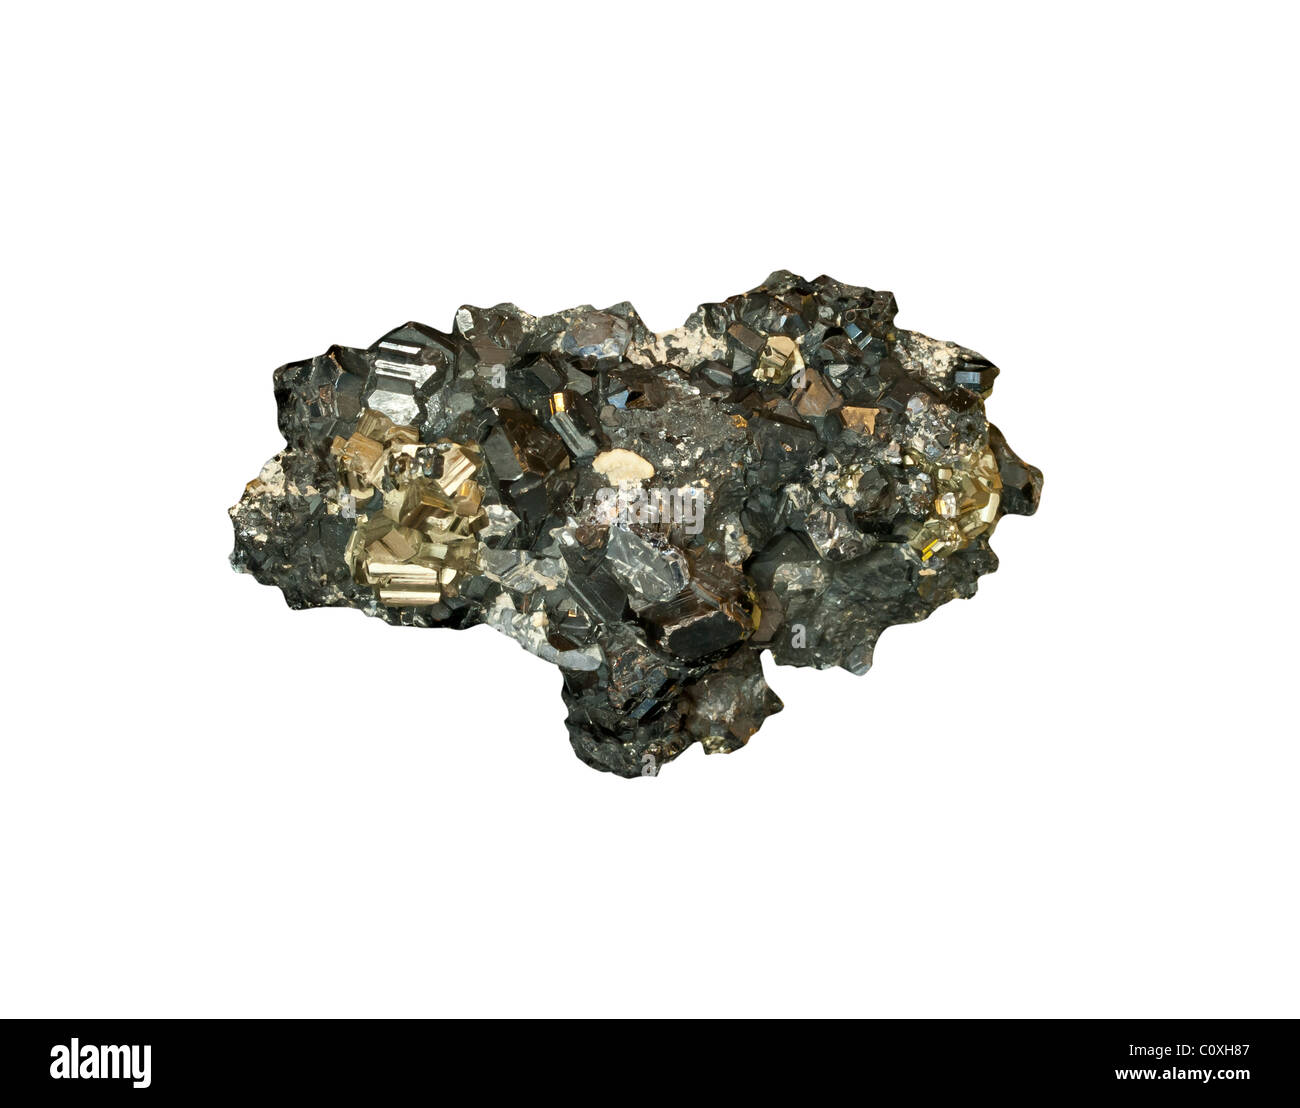 Sphalerite and Pyrite from Romania - Stock Image